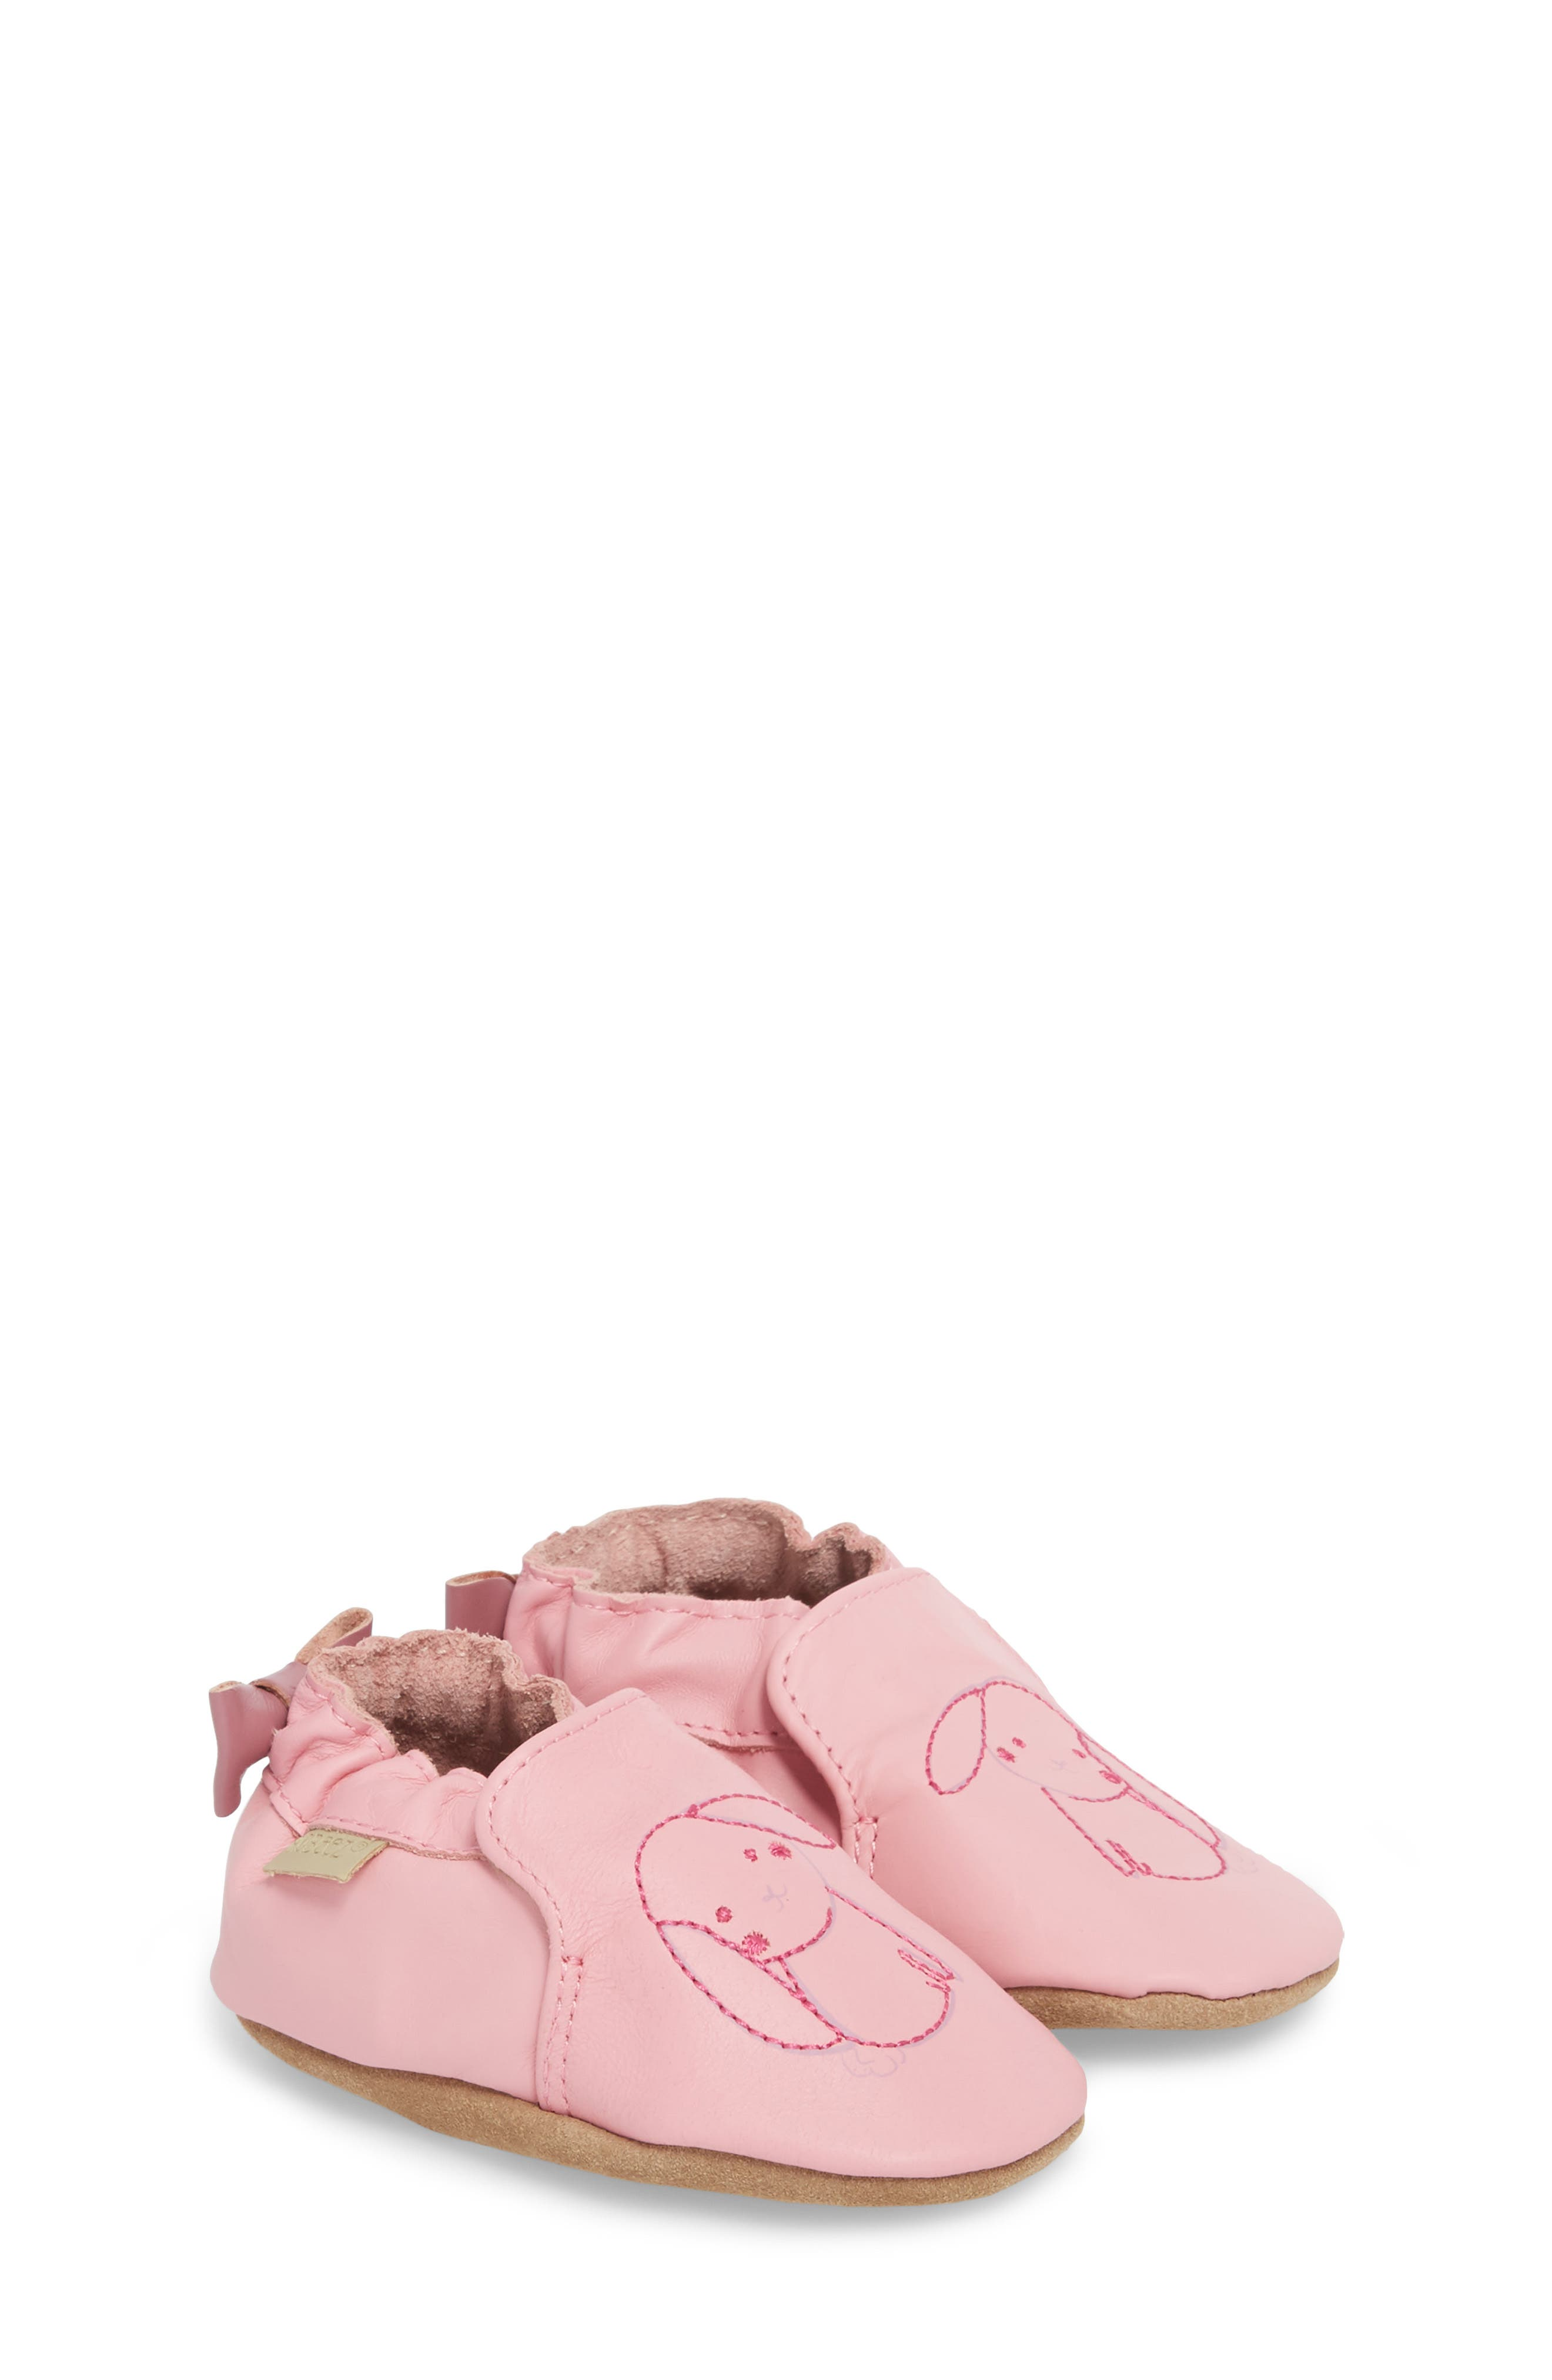 Sweet Bunny Moccasin Crib Shoe,                             Main thumbnail 1, color,                             PASTEL PINK